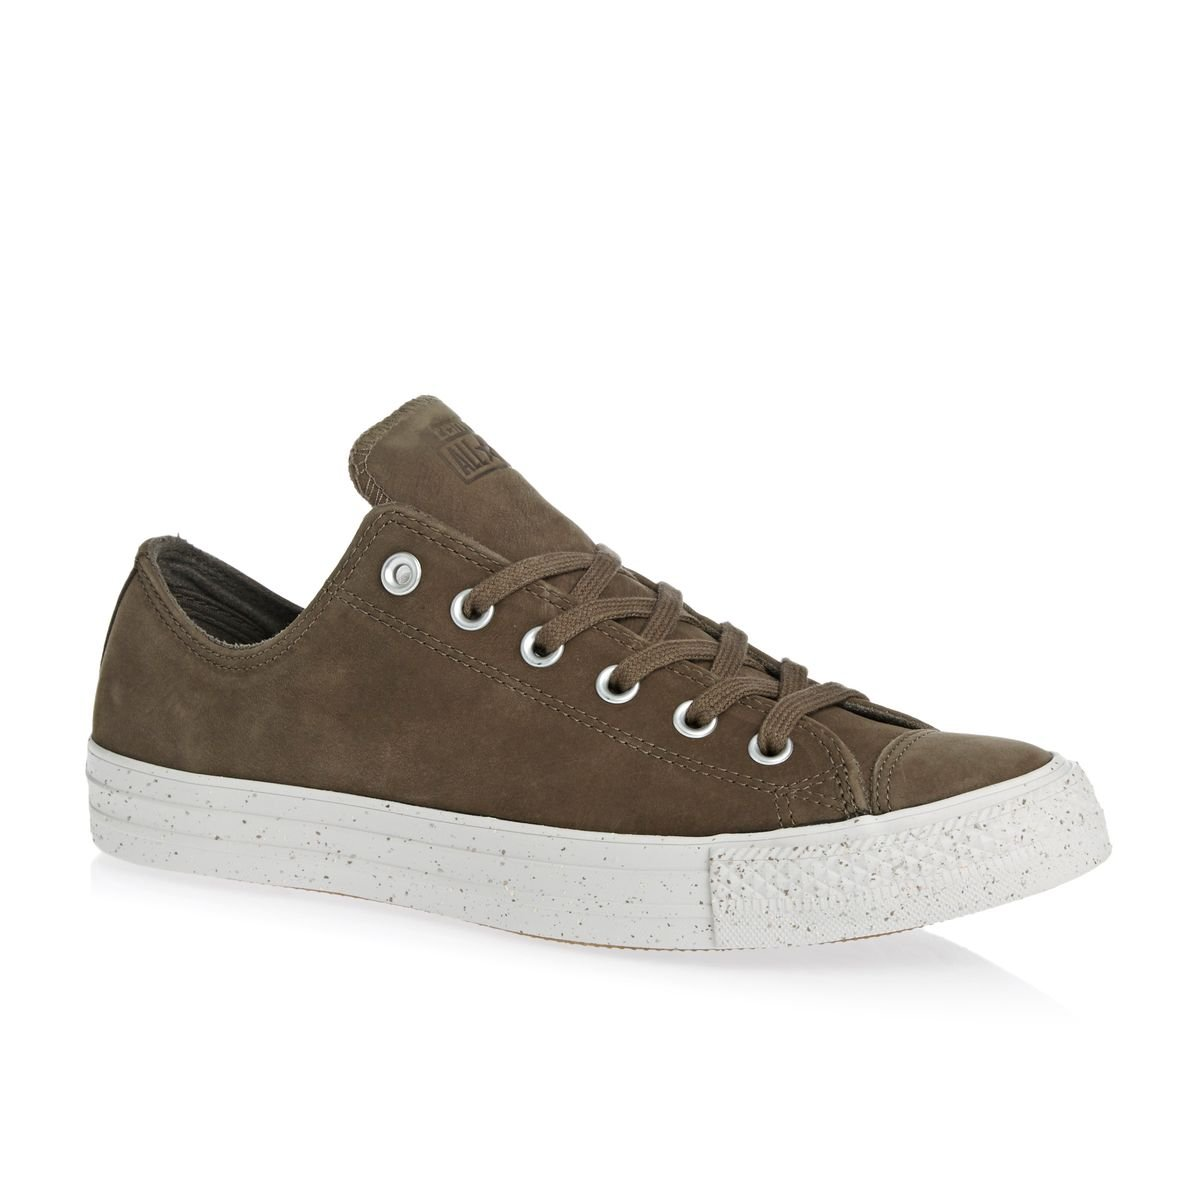 1fa6ac9c37e2 Amazon.com  Converse Chuck Taylor All Star Nubuck Ox Engine Smoke Malted Pale  Putty Athletic Shoes  Shoes